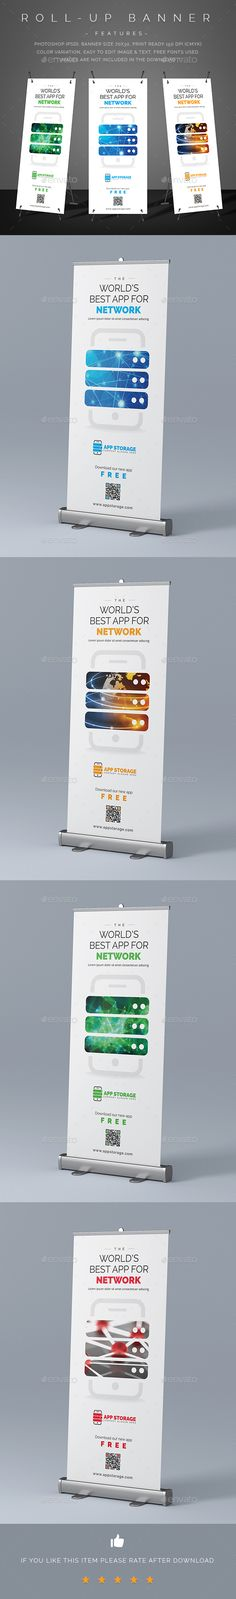 Mobile App Promotion Roll-Up Banner — PSD Template #display #sign #x-banner…